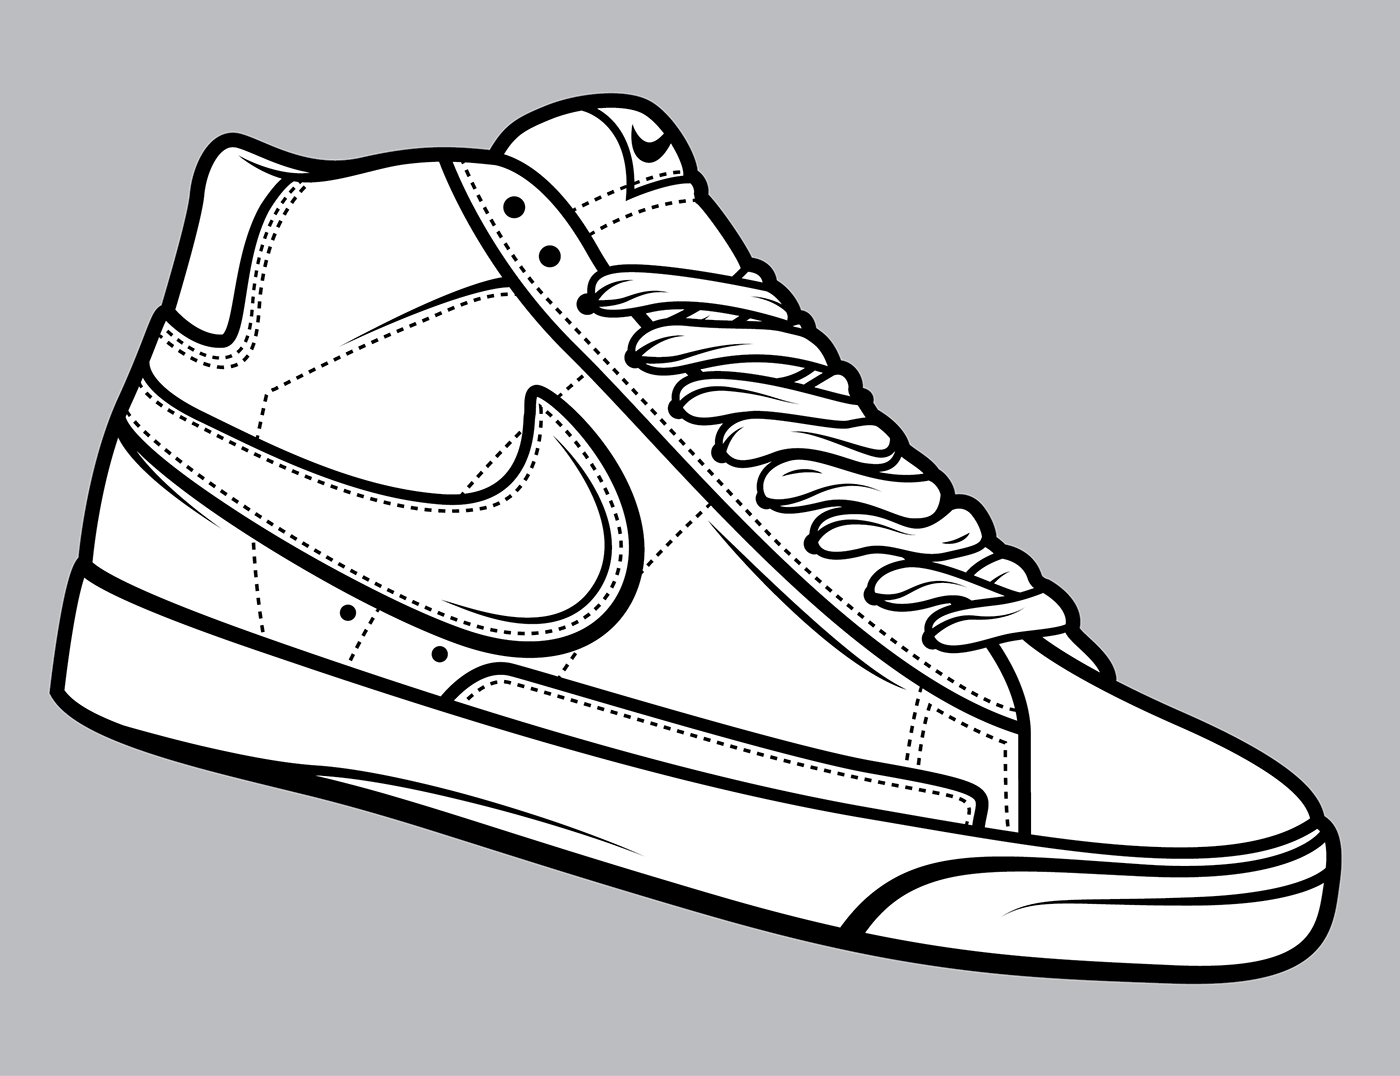 how to draw cartoon shoes pin on ashrys startup shoes cartoon to draw how